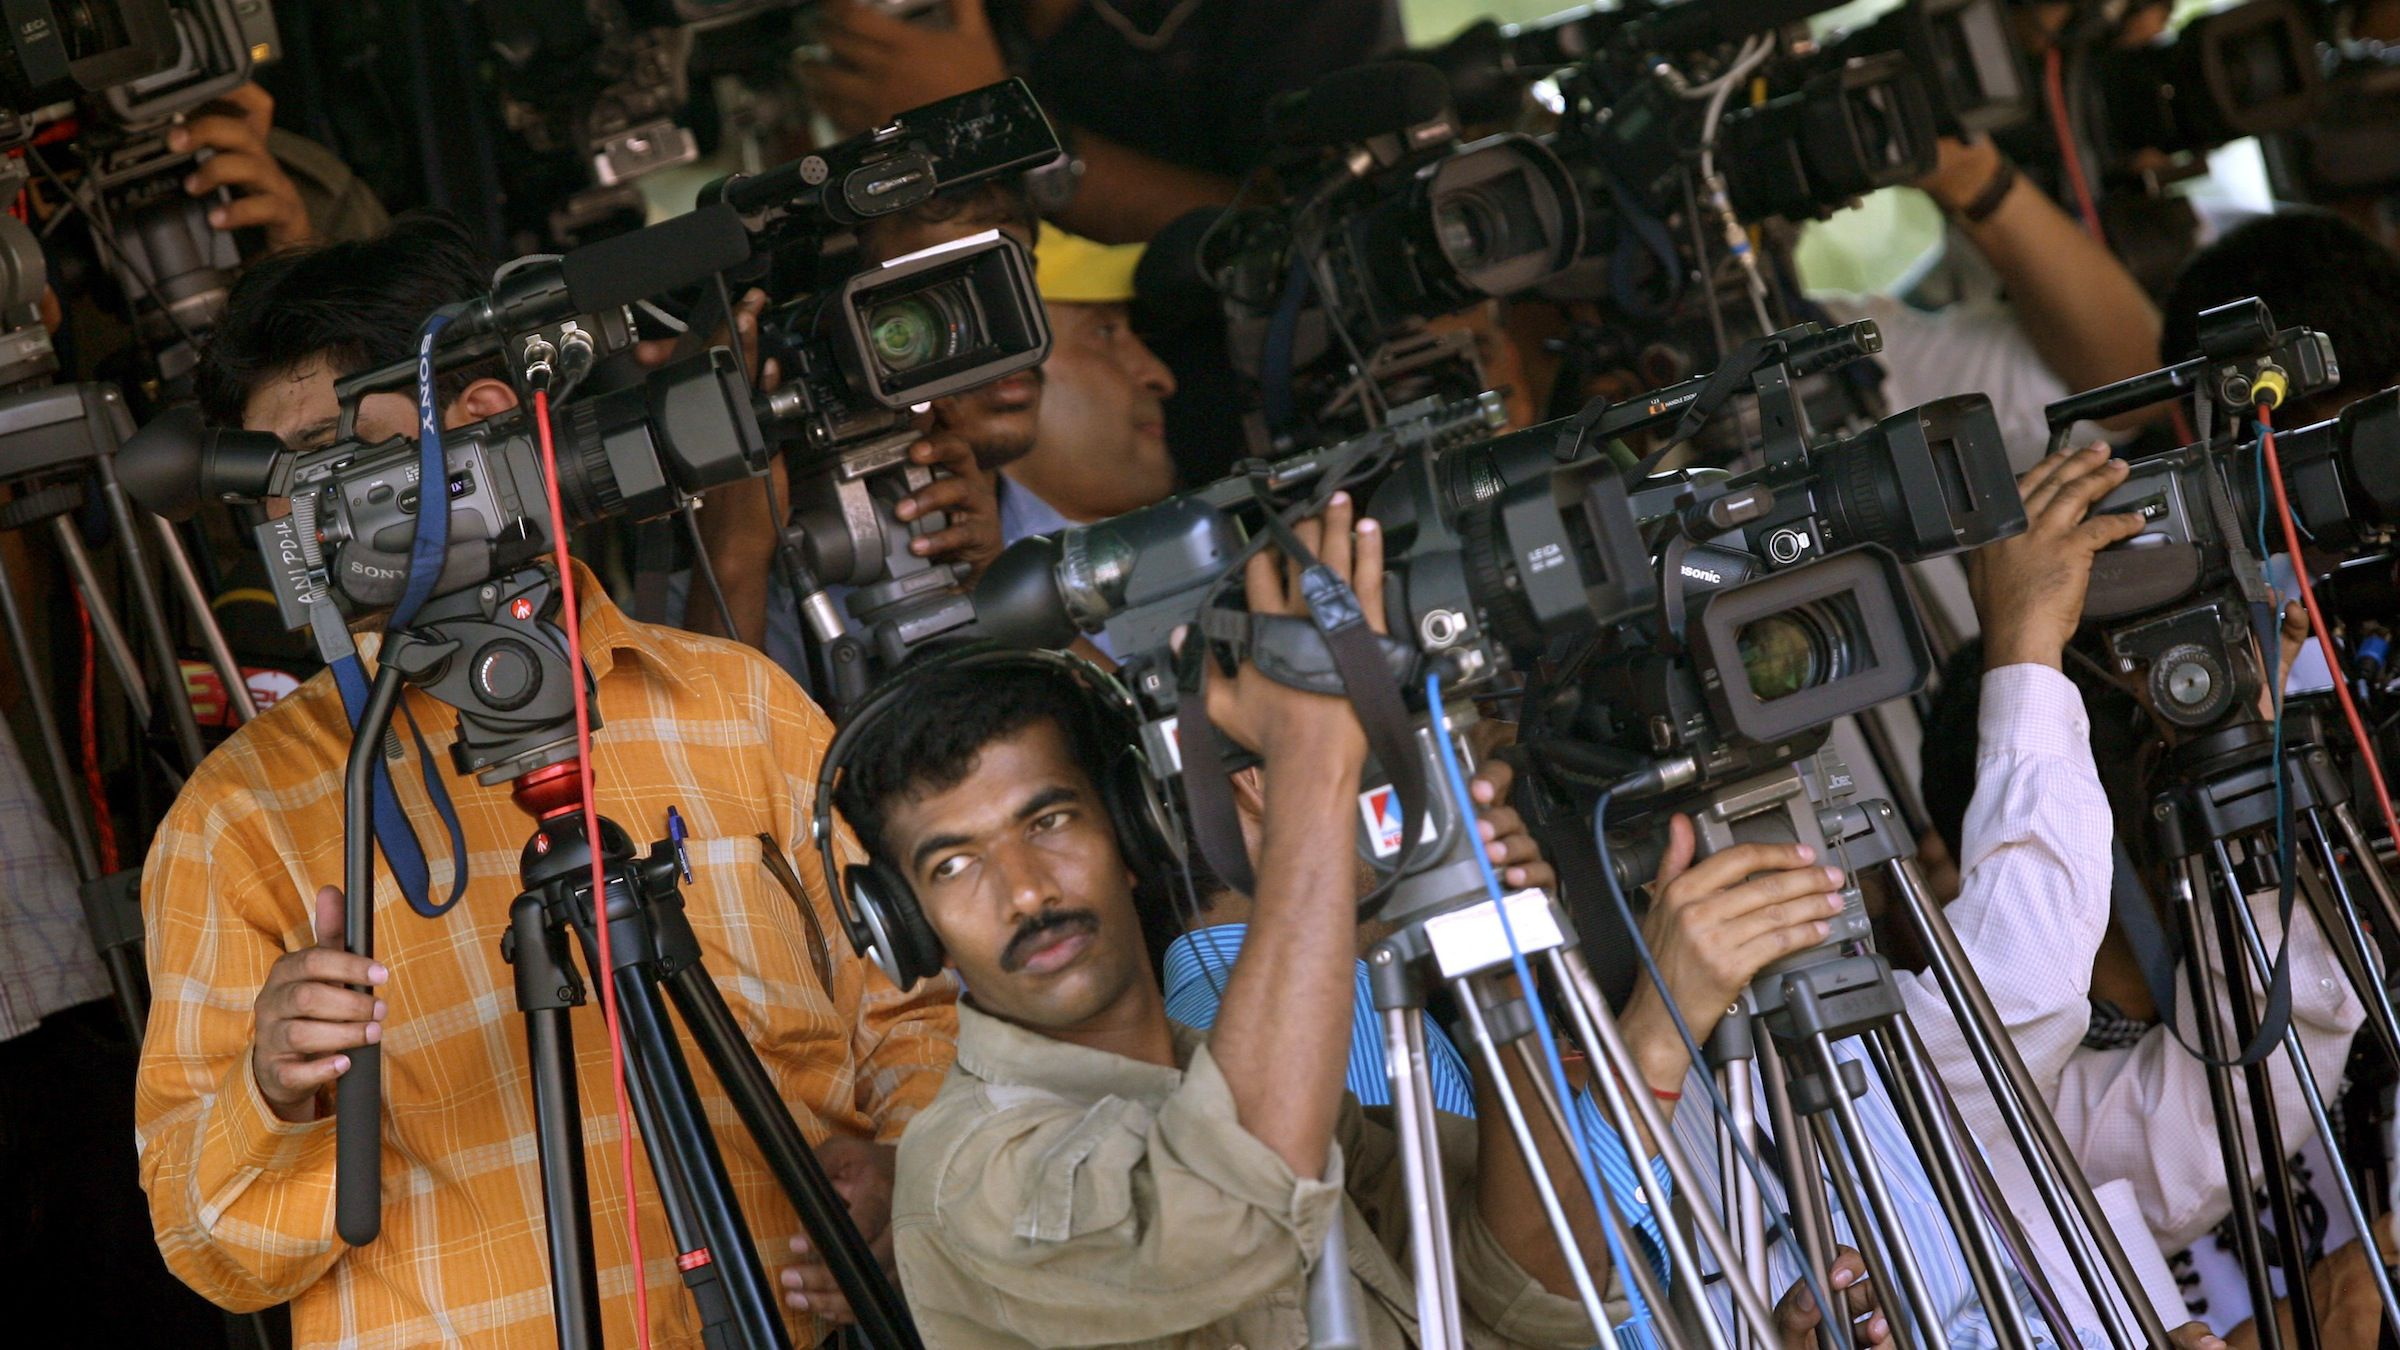 Television cameramen take pictures of India's Prime Minister Manmohan Singh, who is on his way to submit his resignation to President Pratibha Patil at the presidential palace in New Delhi May 18, 2009. The Congress-led coalition eyed possible new allies on Monday after a decisive general election victory raised hopes of a stable government and sent financial markets soaring. REUTERS/Arko Datta (INDIA POLITICS) - RTXIPKS